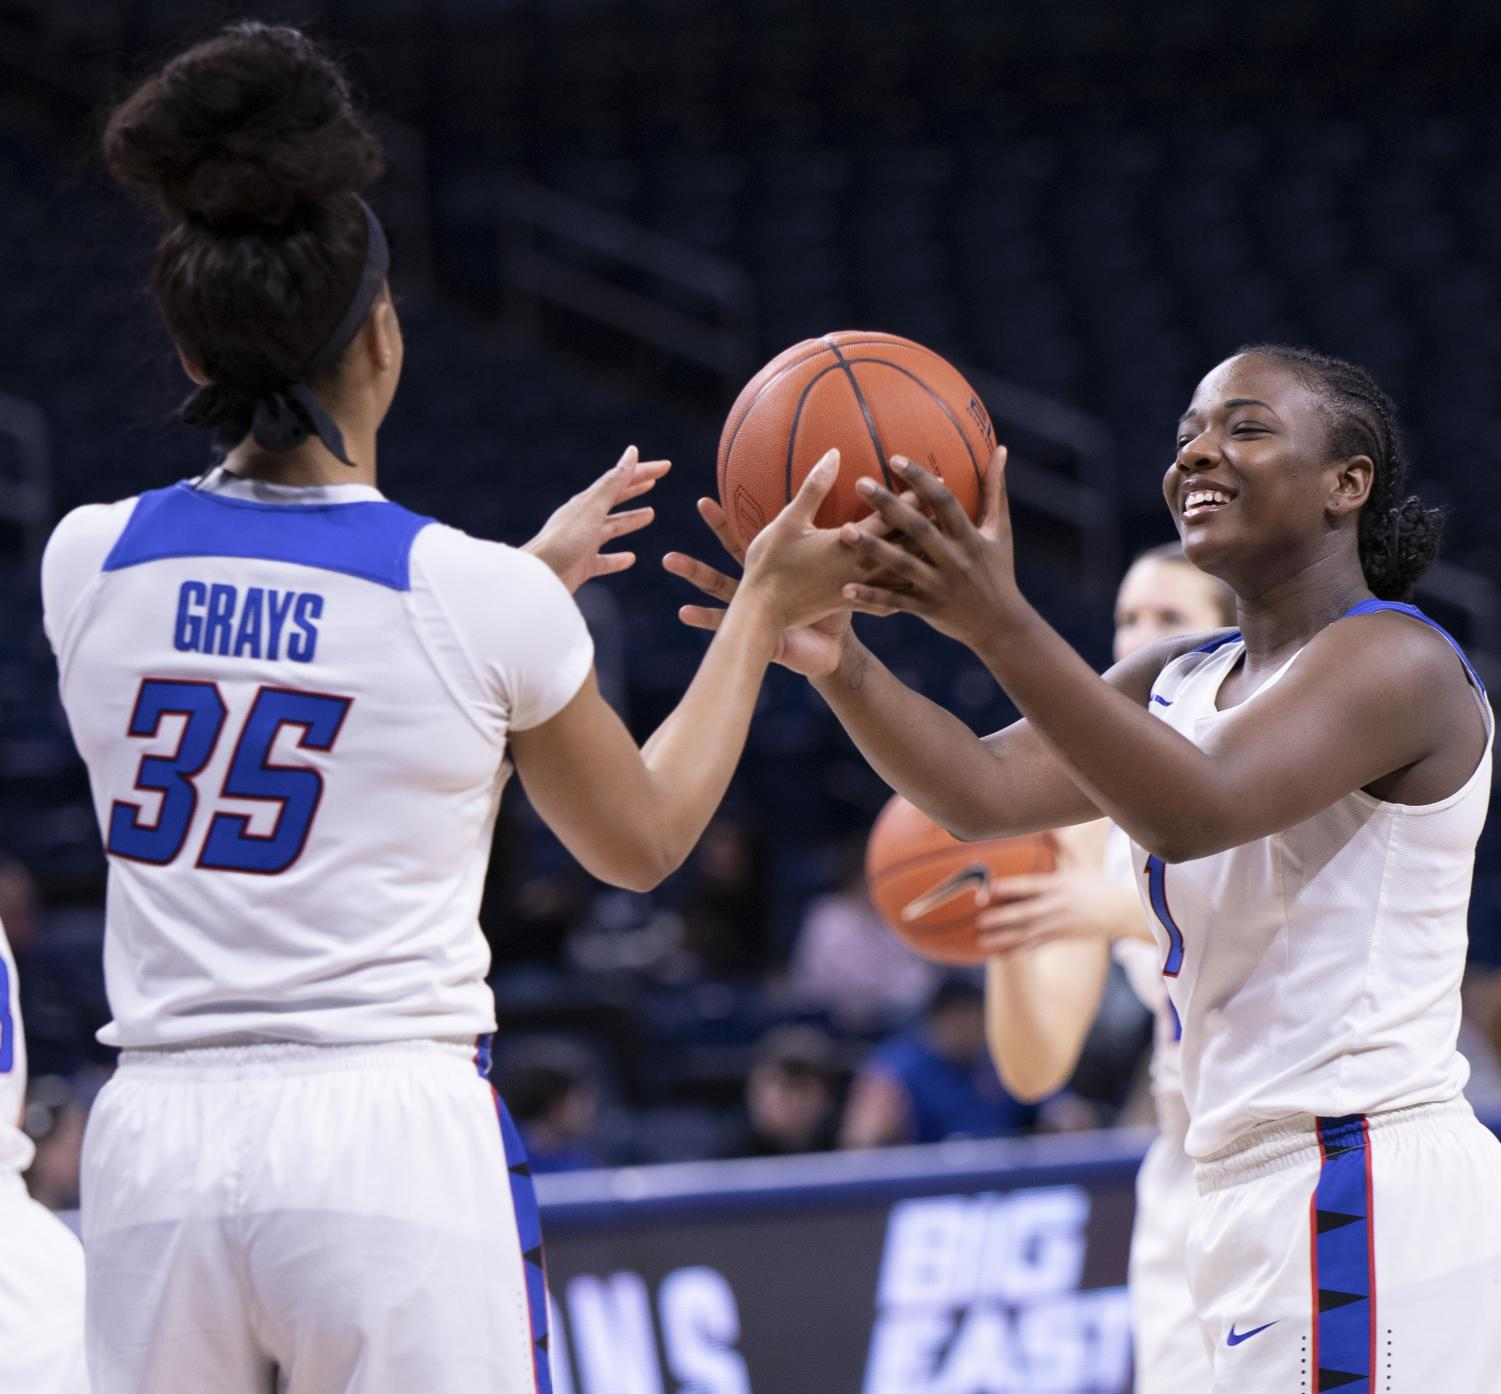 DePaul senior guard Ashton Millender jokingly hands the ball over to fellow senior Mart'e Grays during warmups of DePaul's Feb. 22 game against Xavier at Wintrust Arena.